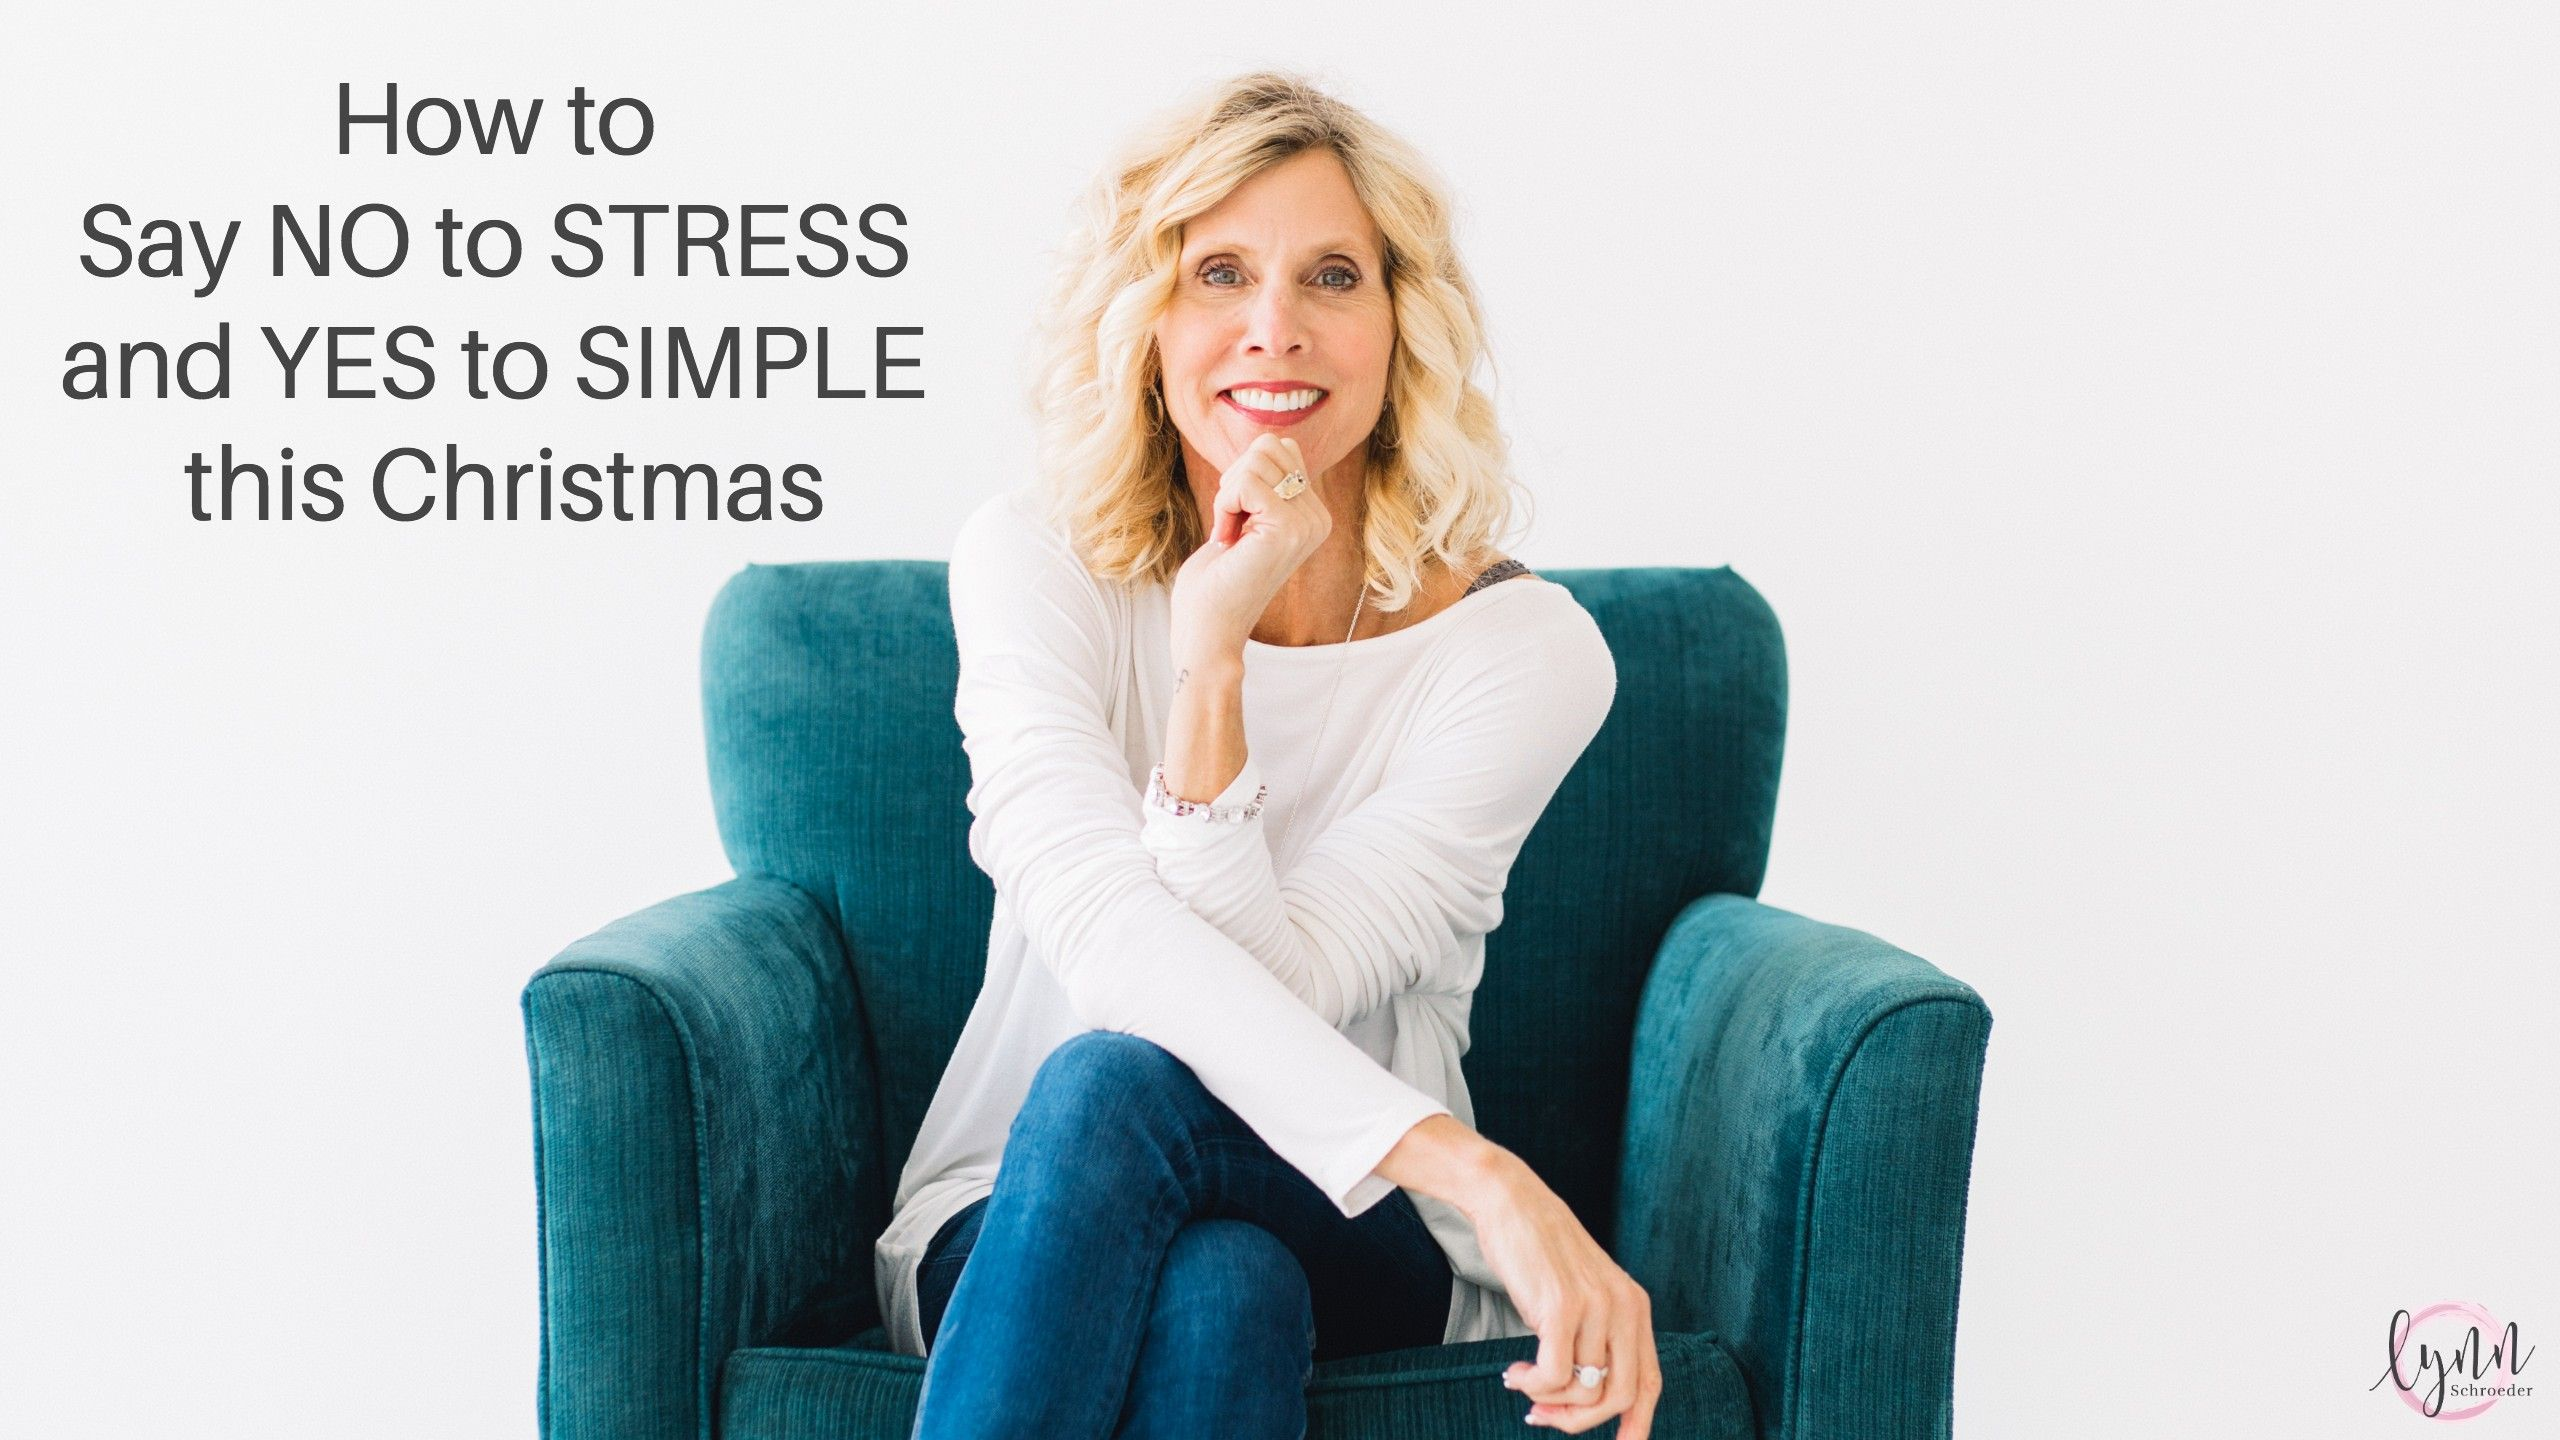 Take Back Christmas and Stop Buying Into Commercialism and Faulty and Unrealistic Expectations  #Christmas2019 #Christmasjoy #rememberthereasonfortheseason #justsayno #expectations #perfectlyimperfect #perfectionism #presentoverperfect #gladtidings #MerryChrismtas #giftgiving #comparison #coaching #lifecoaching #coachingwithLynnSchroeder #URenough #takeachanceonYOU